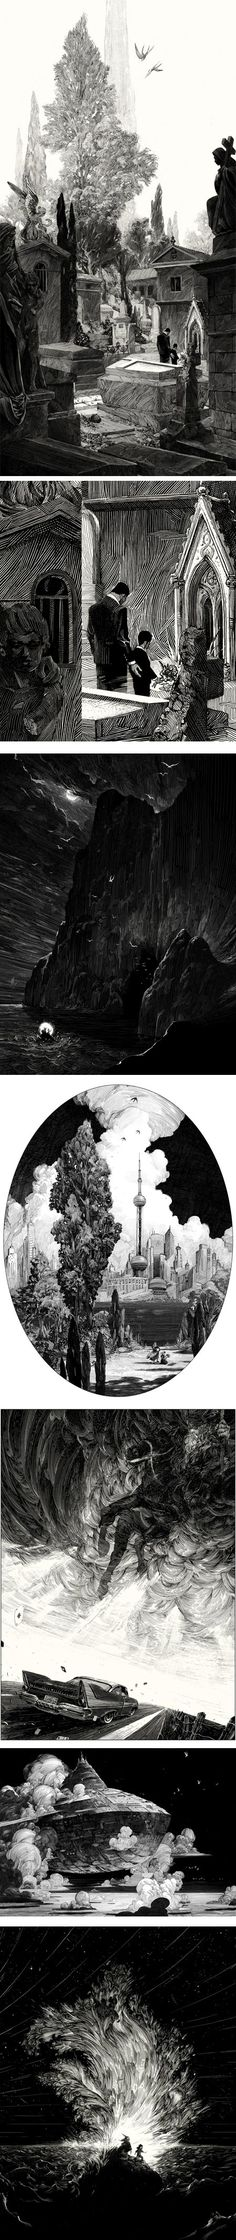 Nicolas Delort, a freelance illustrator based in Paris, creates wonderfully textural pen & ink (and/or scratchboard?) illustrations that take inspiration from greats like Franklin Booth and Gustav Doré — with perhaps a bit of Joseph Clement Coll and Virgil Finlay thrown in for good measure.